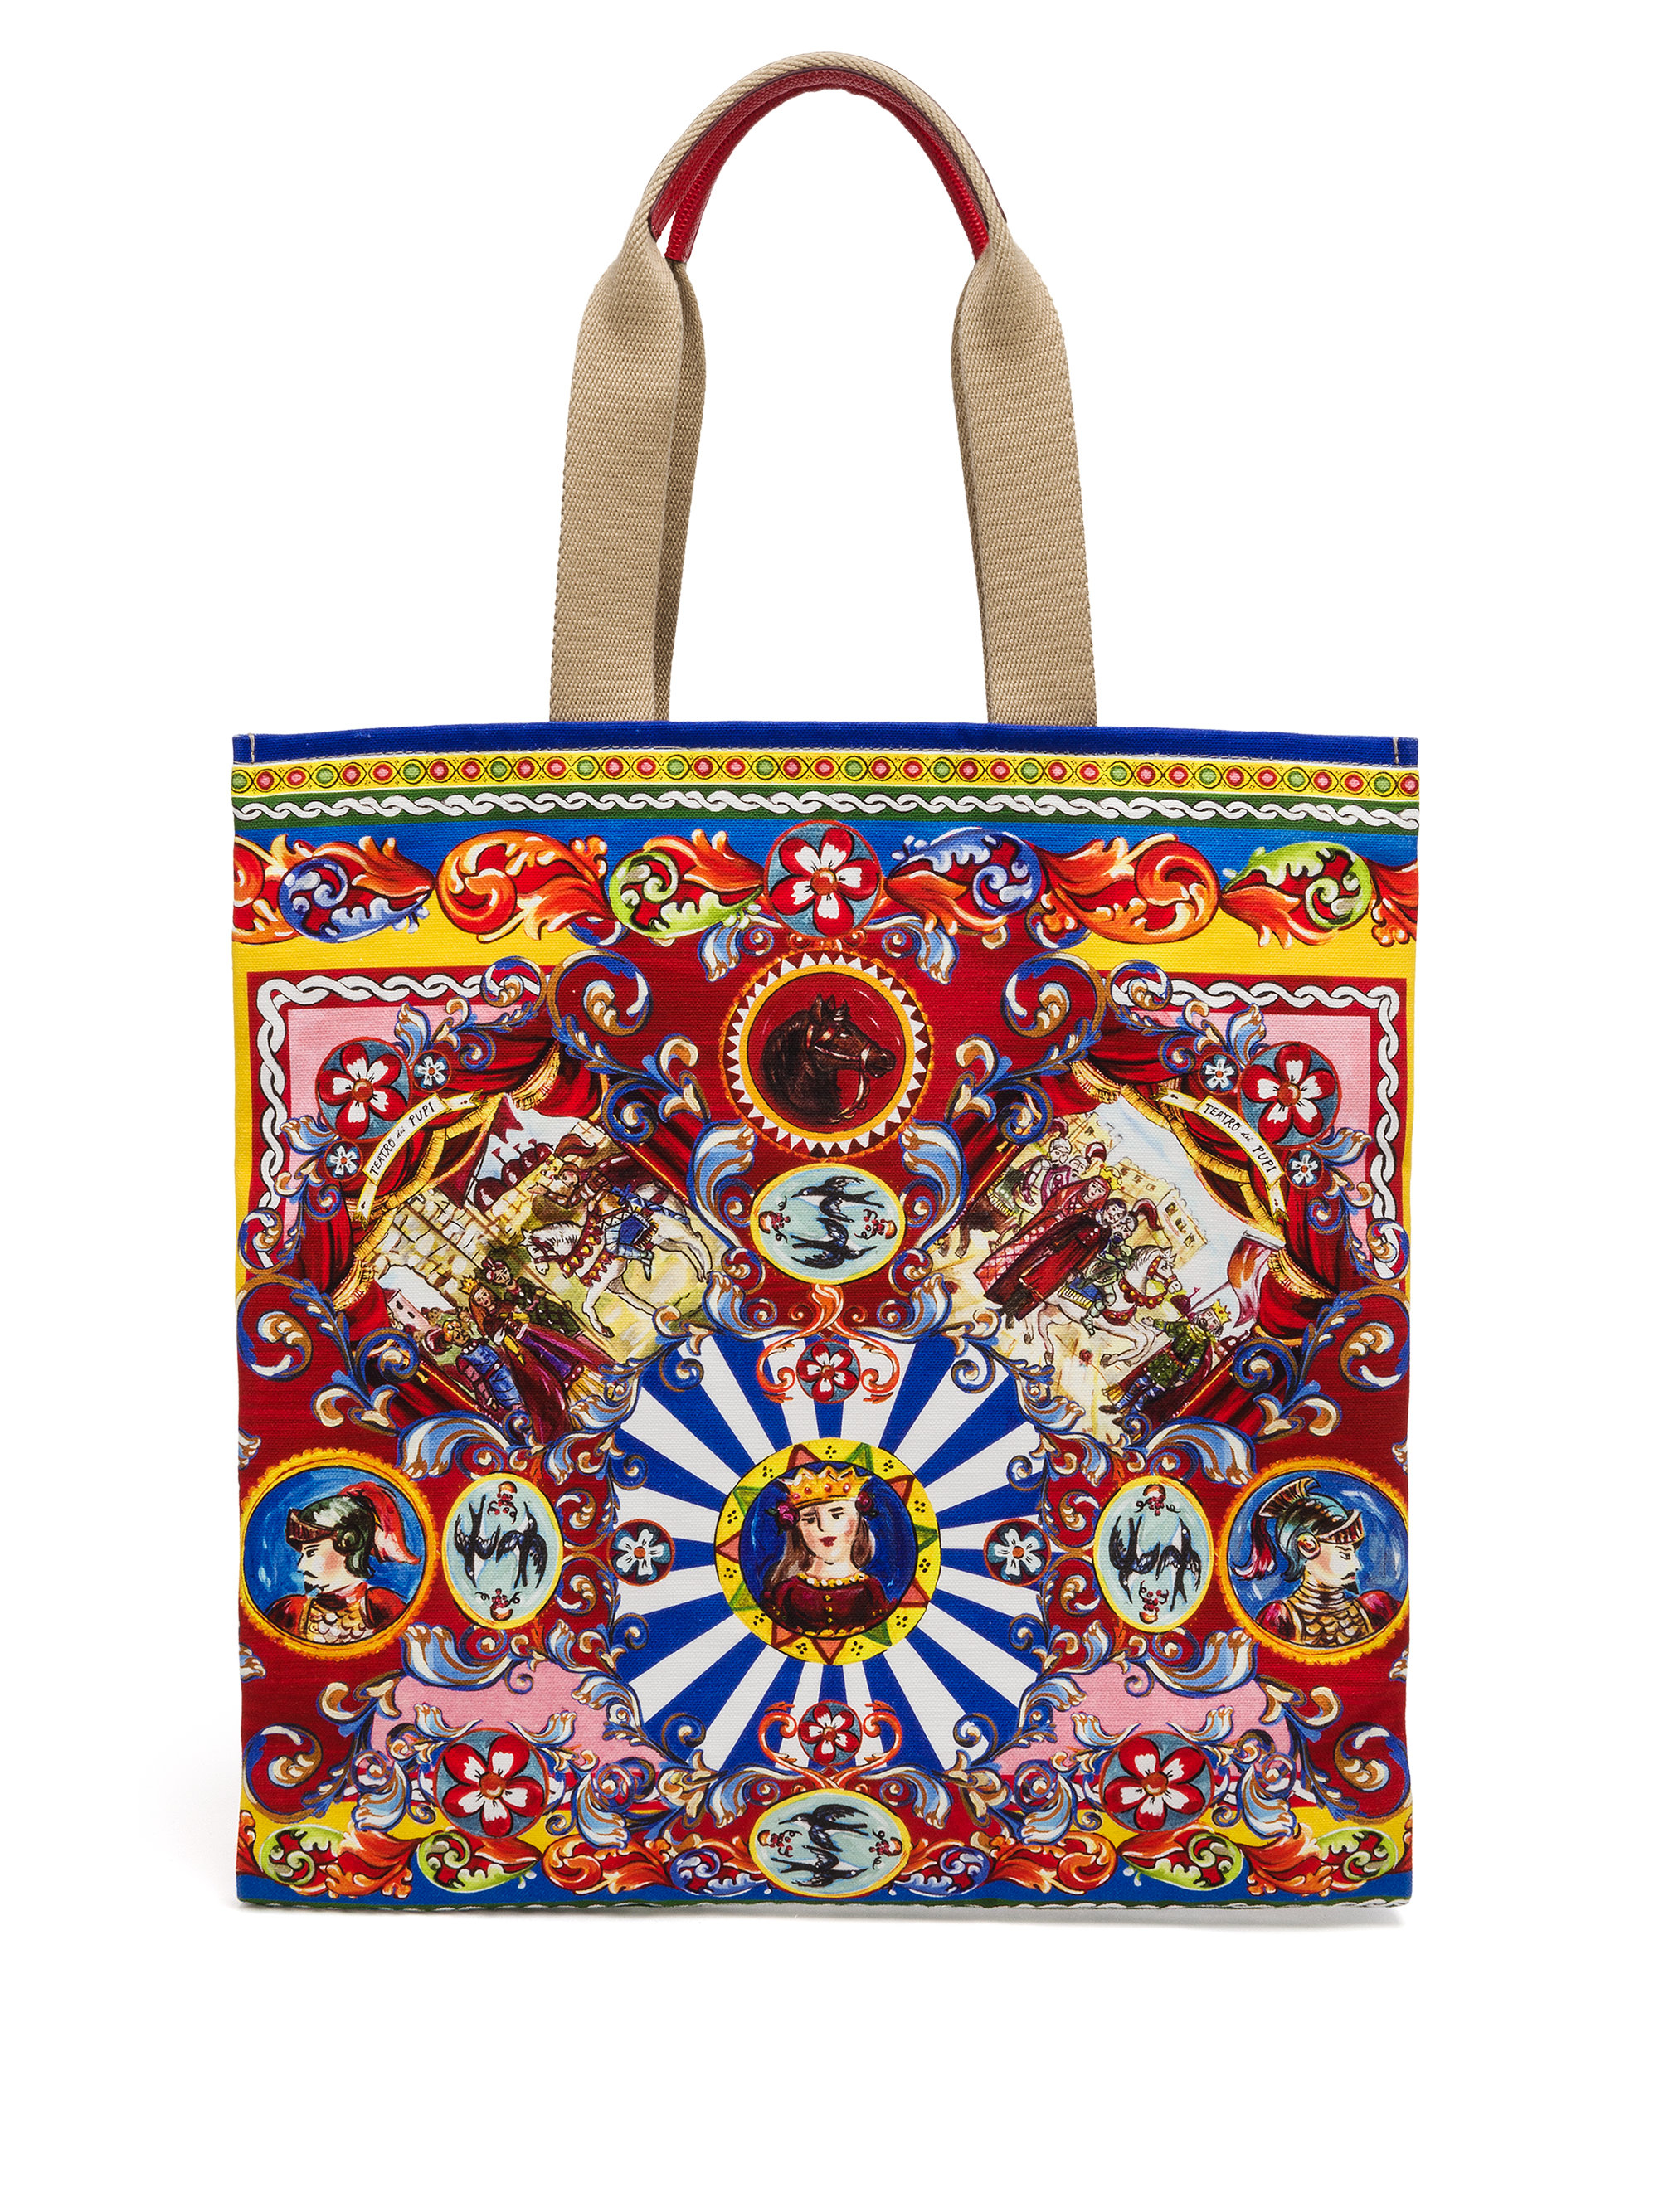 5126ffe99cd5 Lyst - Dolce   Gabbana Abstract-print Coated Canvas Tote